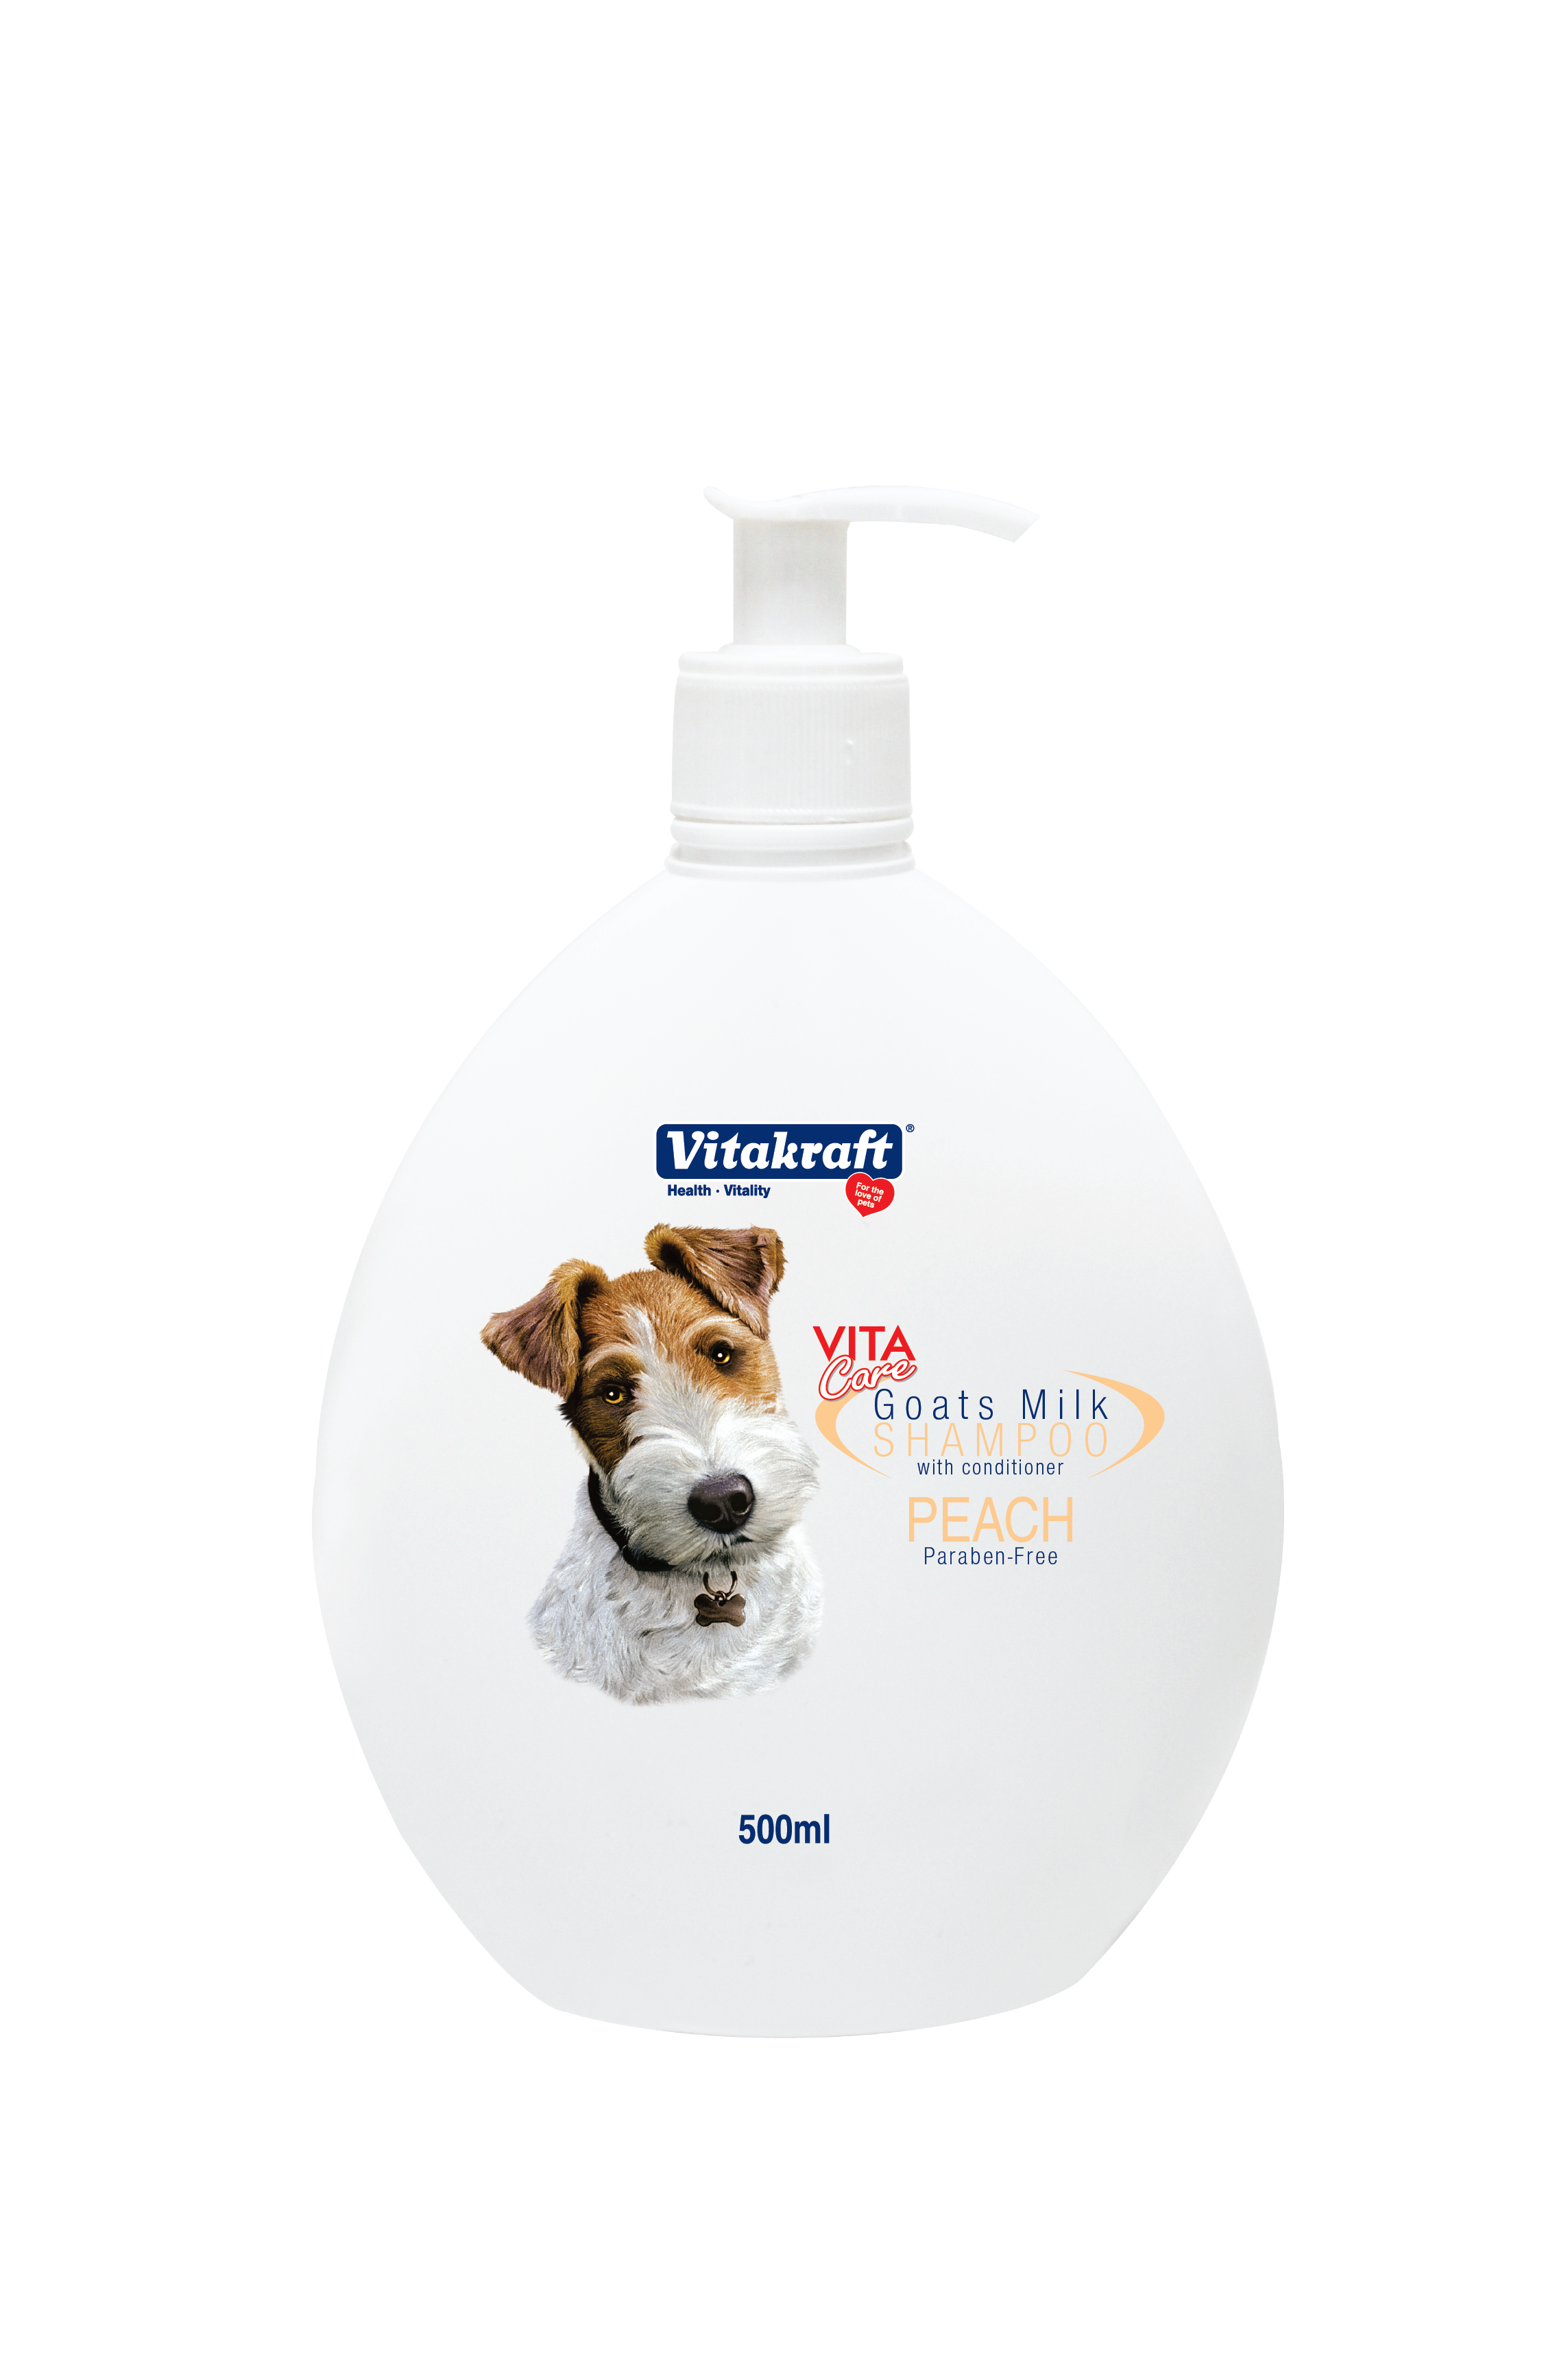 Vitakraft 2 in 1 Goat's Milk Shampoo for Dogs Peach Scented